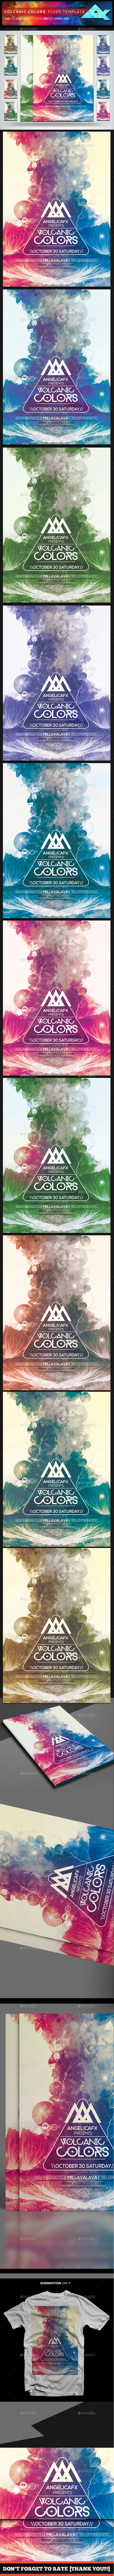 Volcanic Colors Flyer Template - Flyers Print Templates